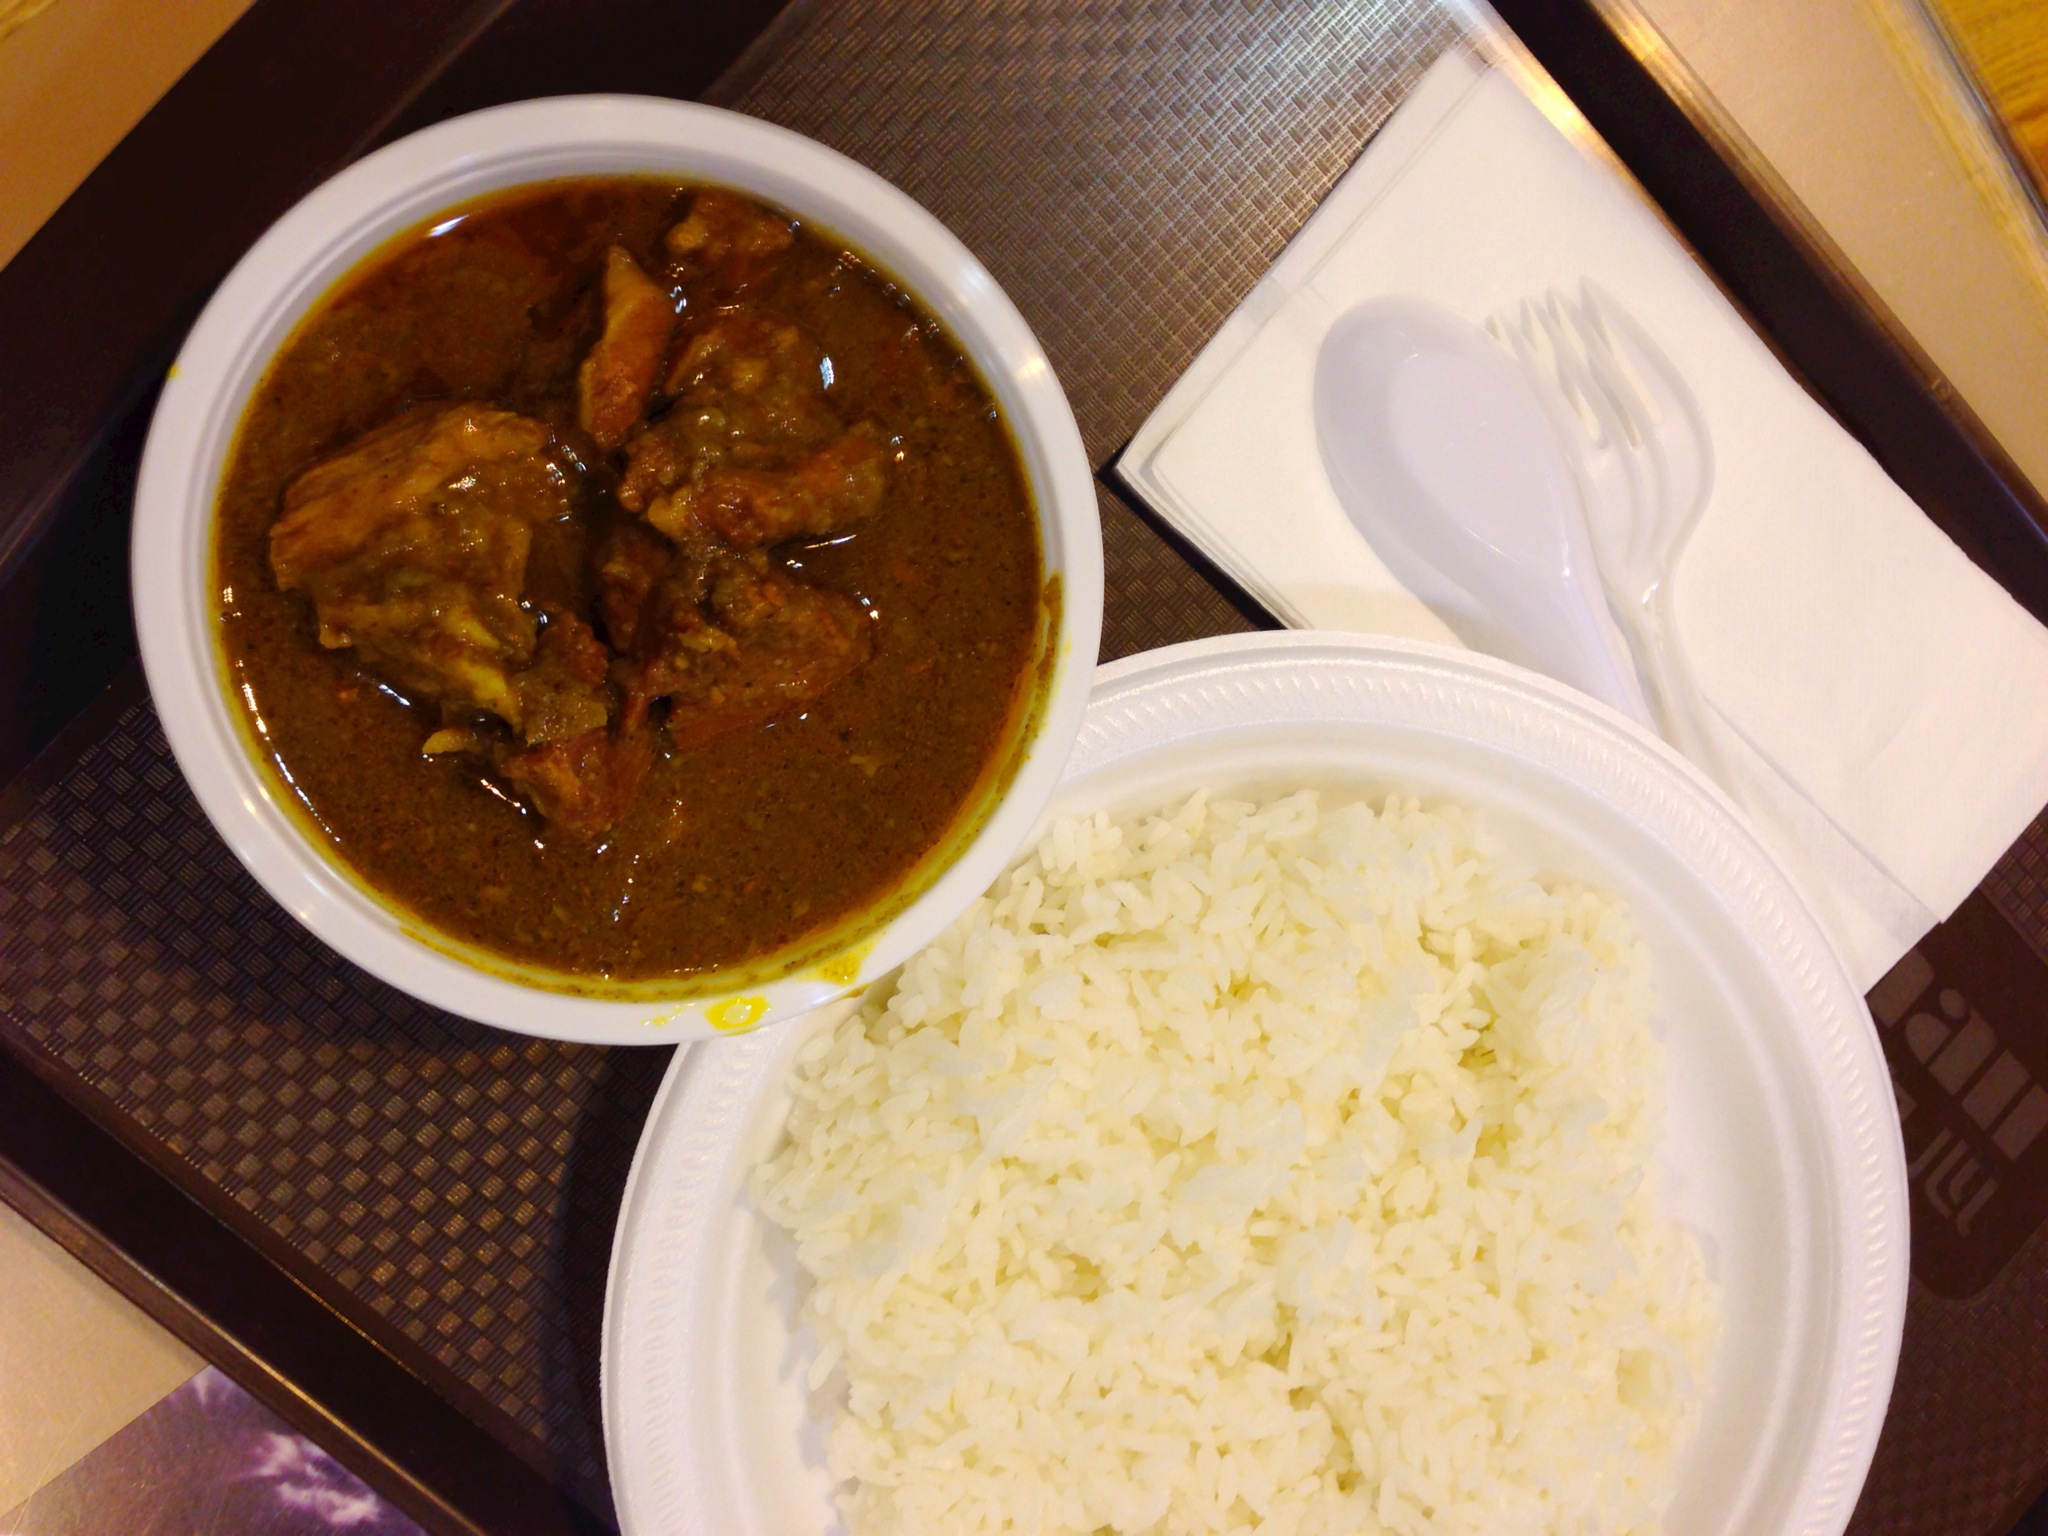 Curry Lamb @ Curry House Yaohan Centre